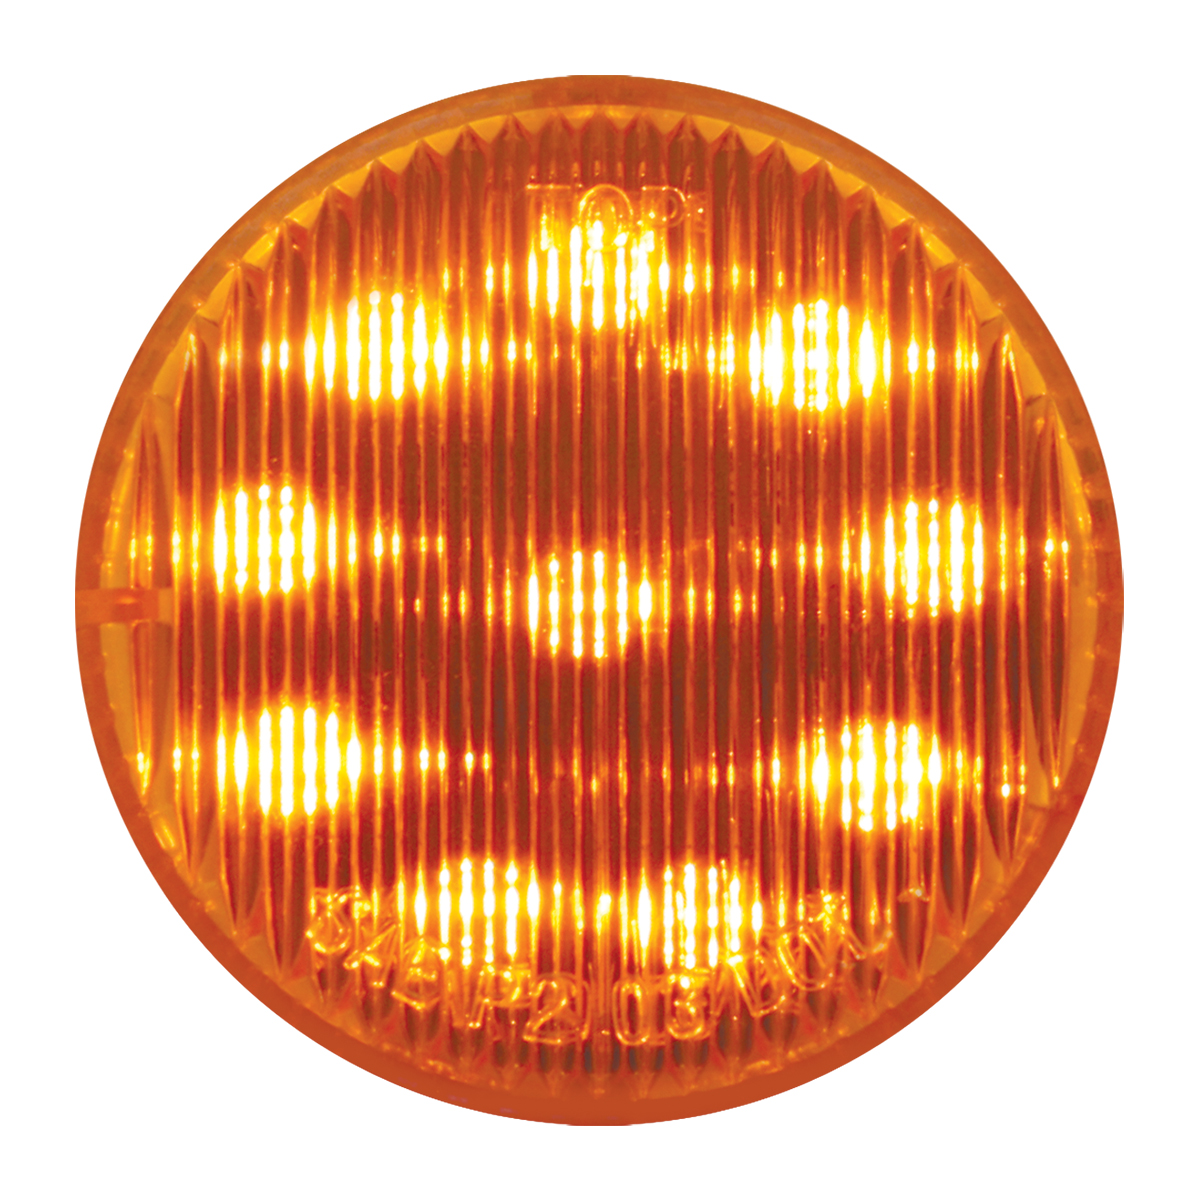 "#79280 2"" Round LED Flat Amber/Amber Light"